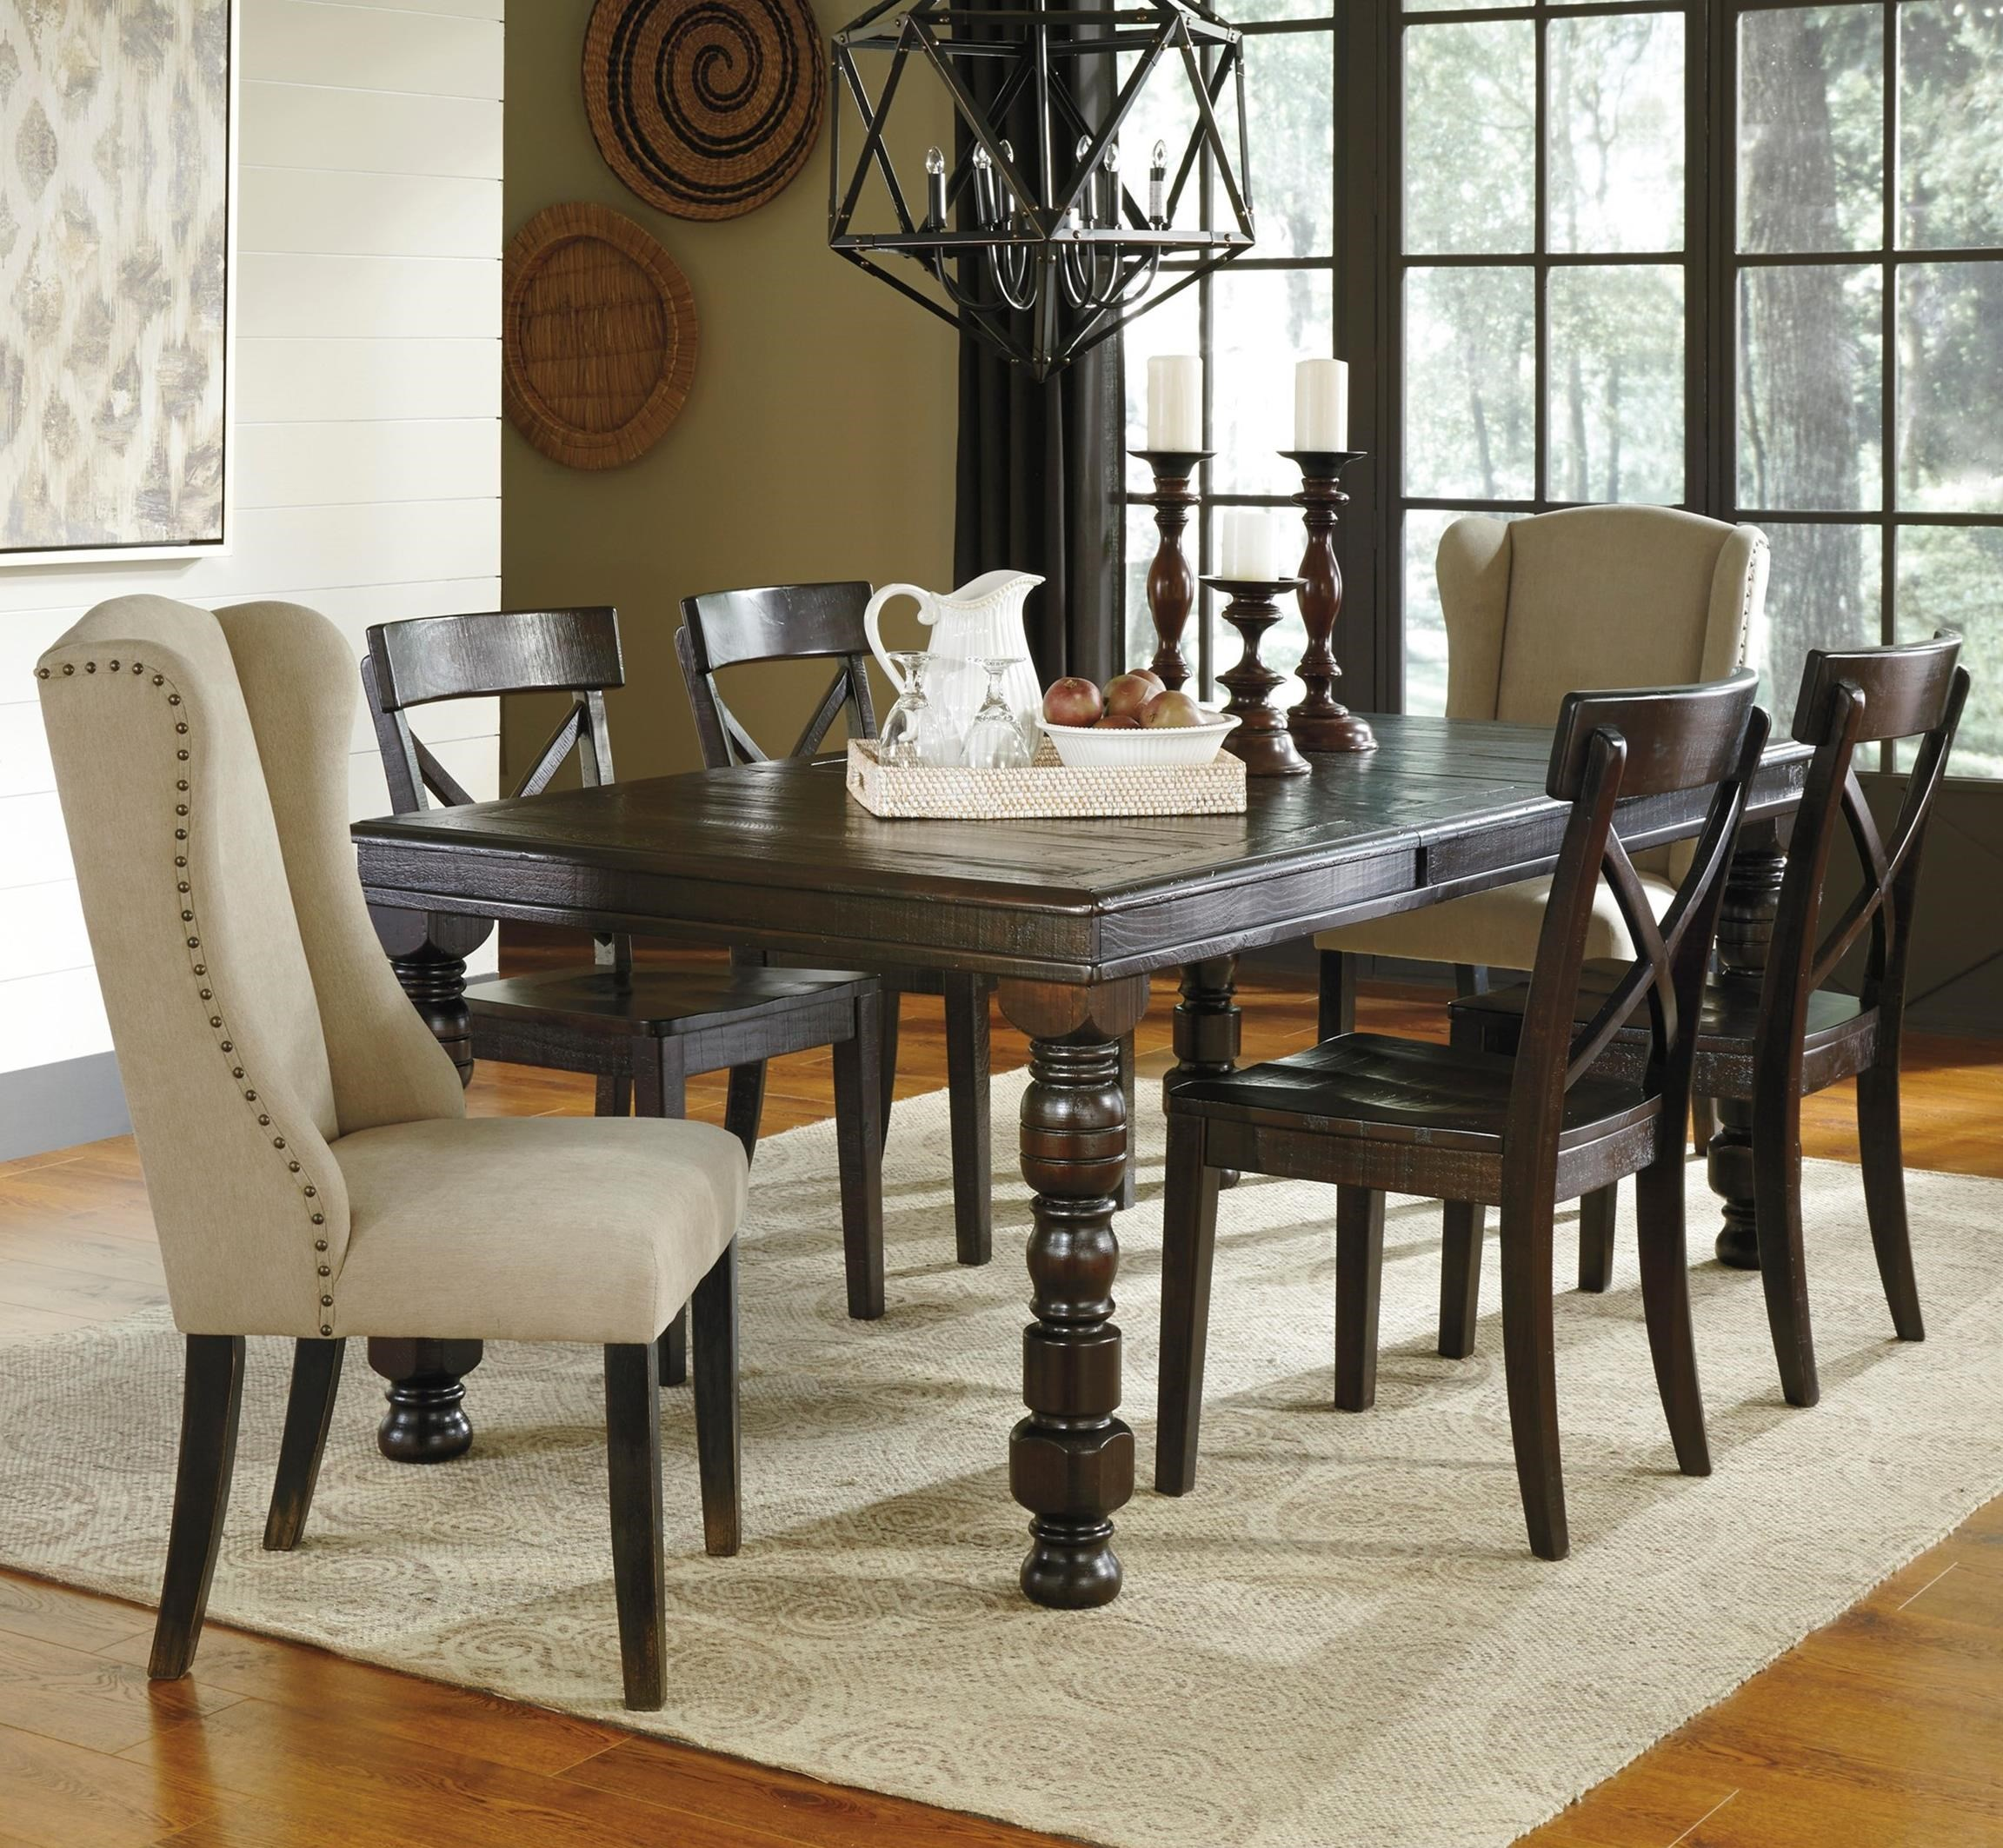 Signature Design by Ashley Gerlane 7-Piece Dining Table Set - Item Number: D657-32+2x02+4x01